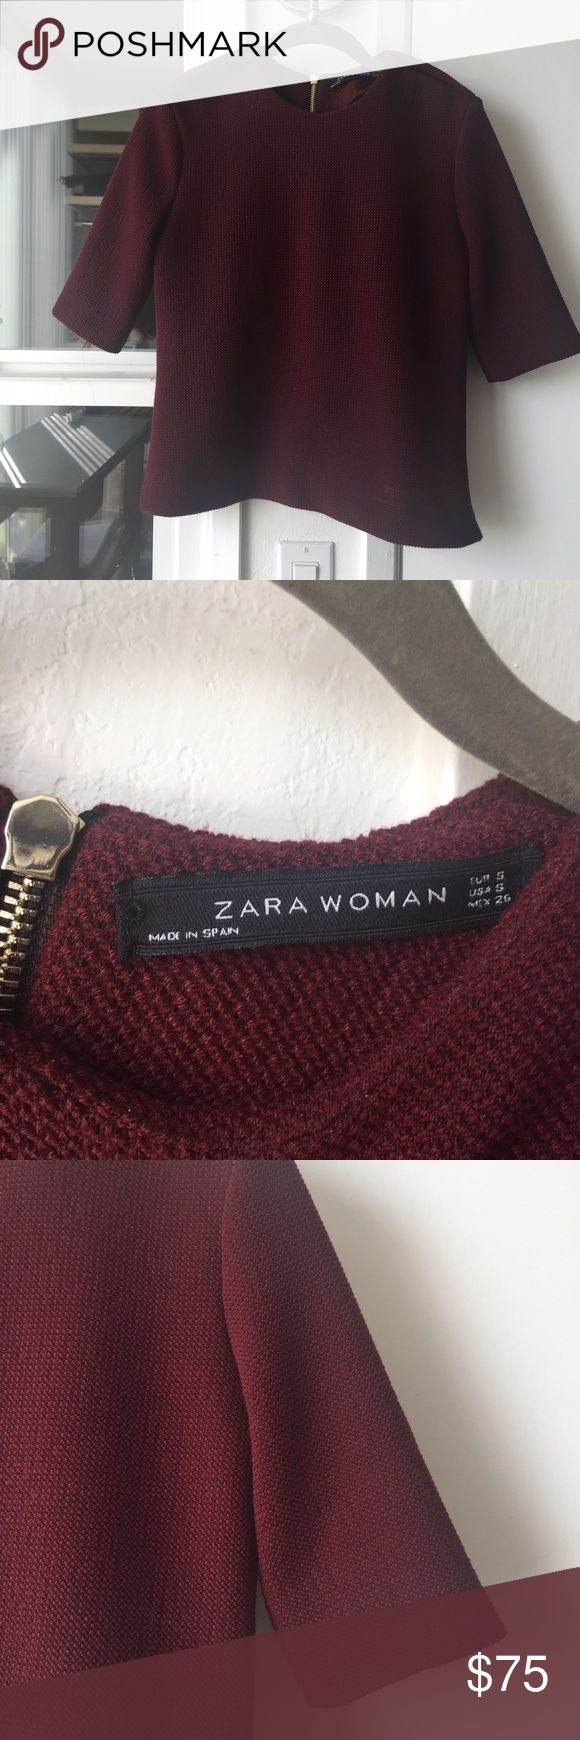 ZARA structured top, S Fits 2-4.  Excellent condition.  Epaulettes on shoulders.  Modern classic.  Burgundy.  See their listing for navy blue.  Easy care: machine wash cold.  Longer sleeves hit about an inch above my elbow.  I am more of 4-6, too tight for me now. Zara Tops Blouses